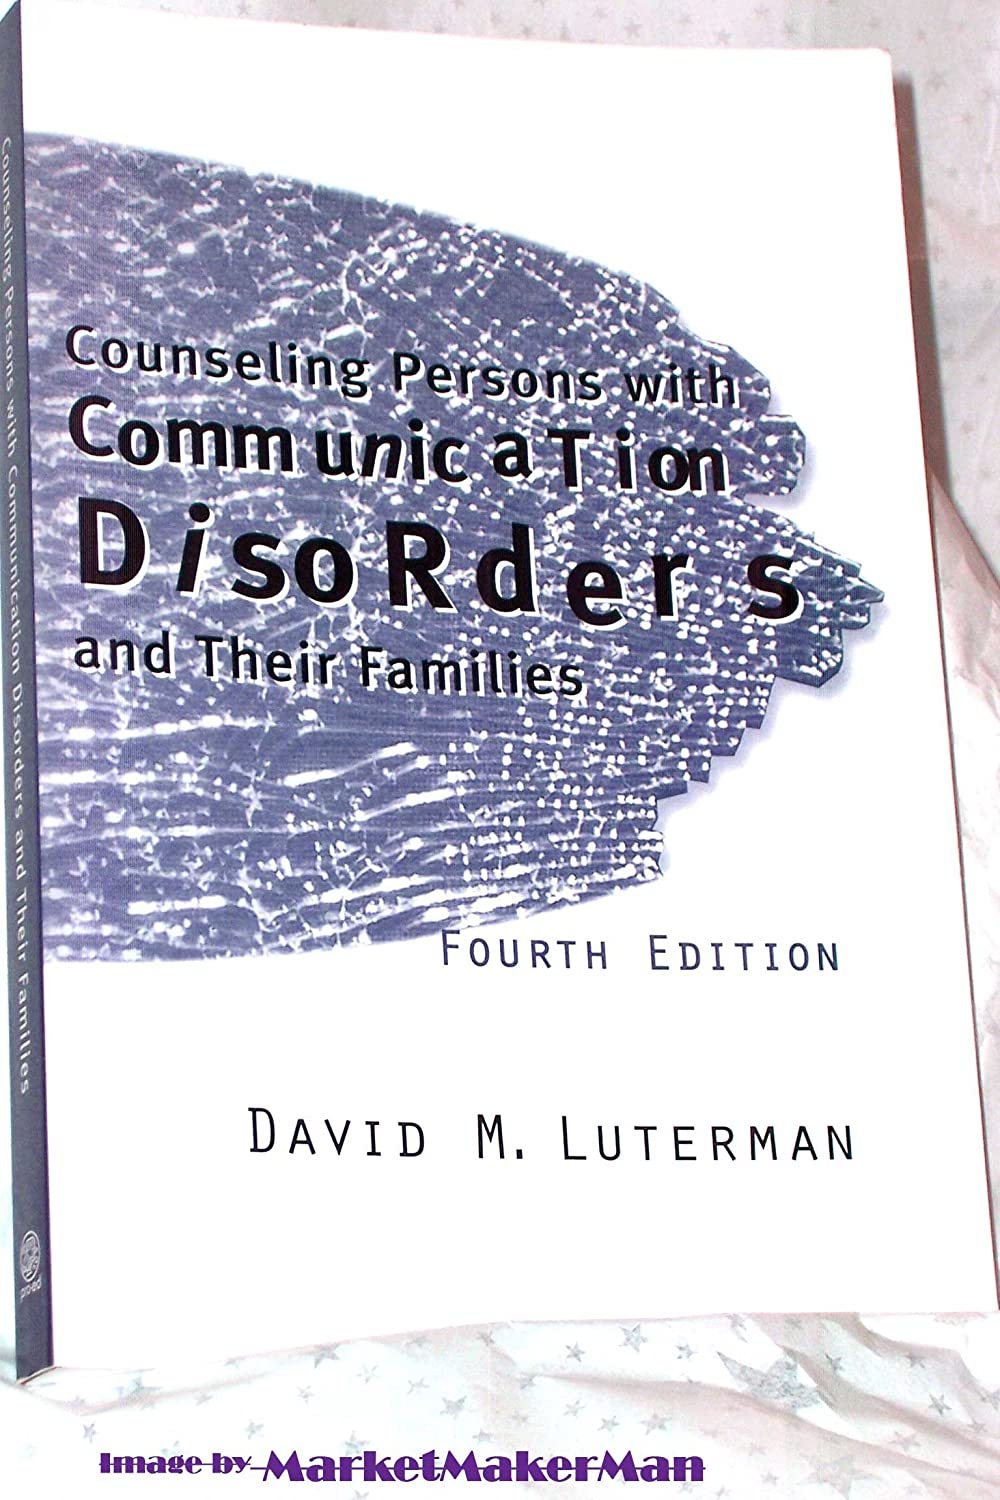 Counseling Persons with Communication Disorders and Their Families David M. Luterman